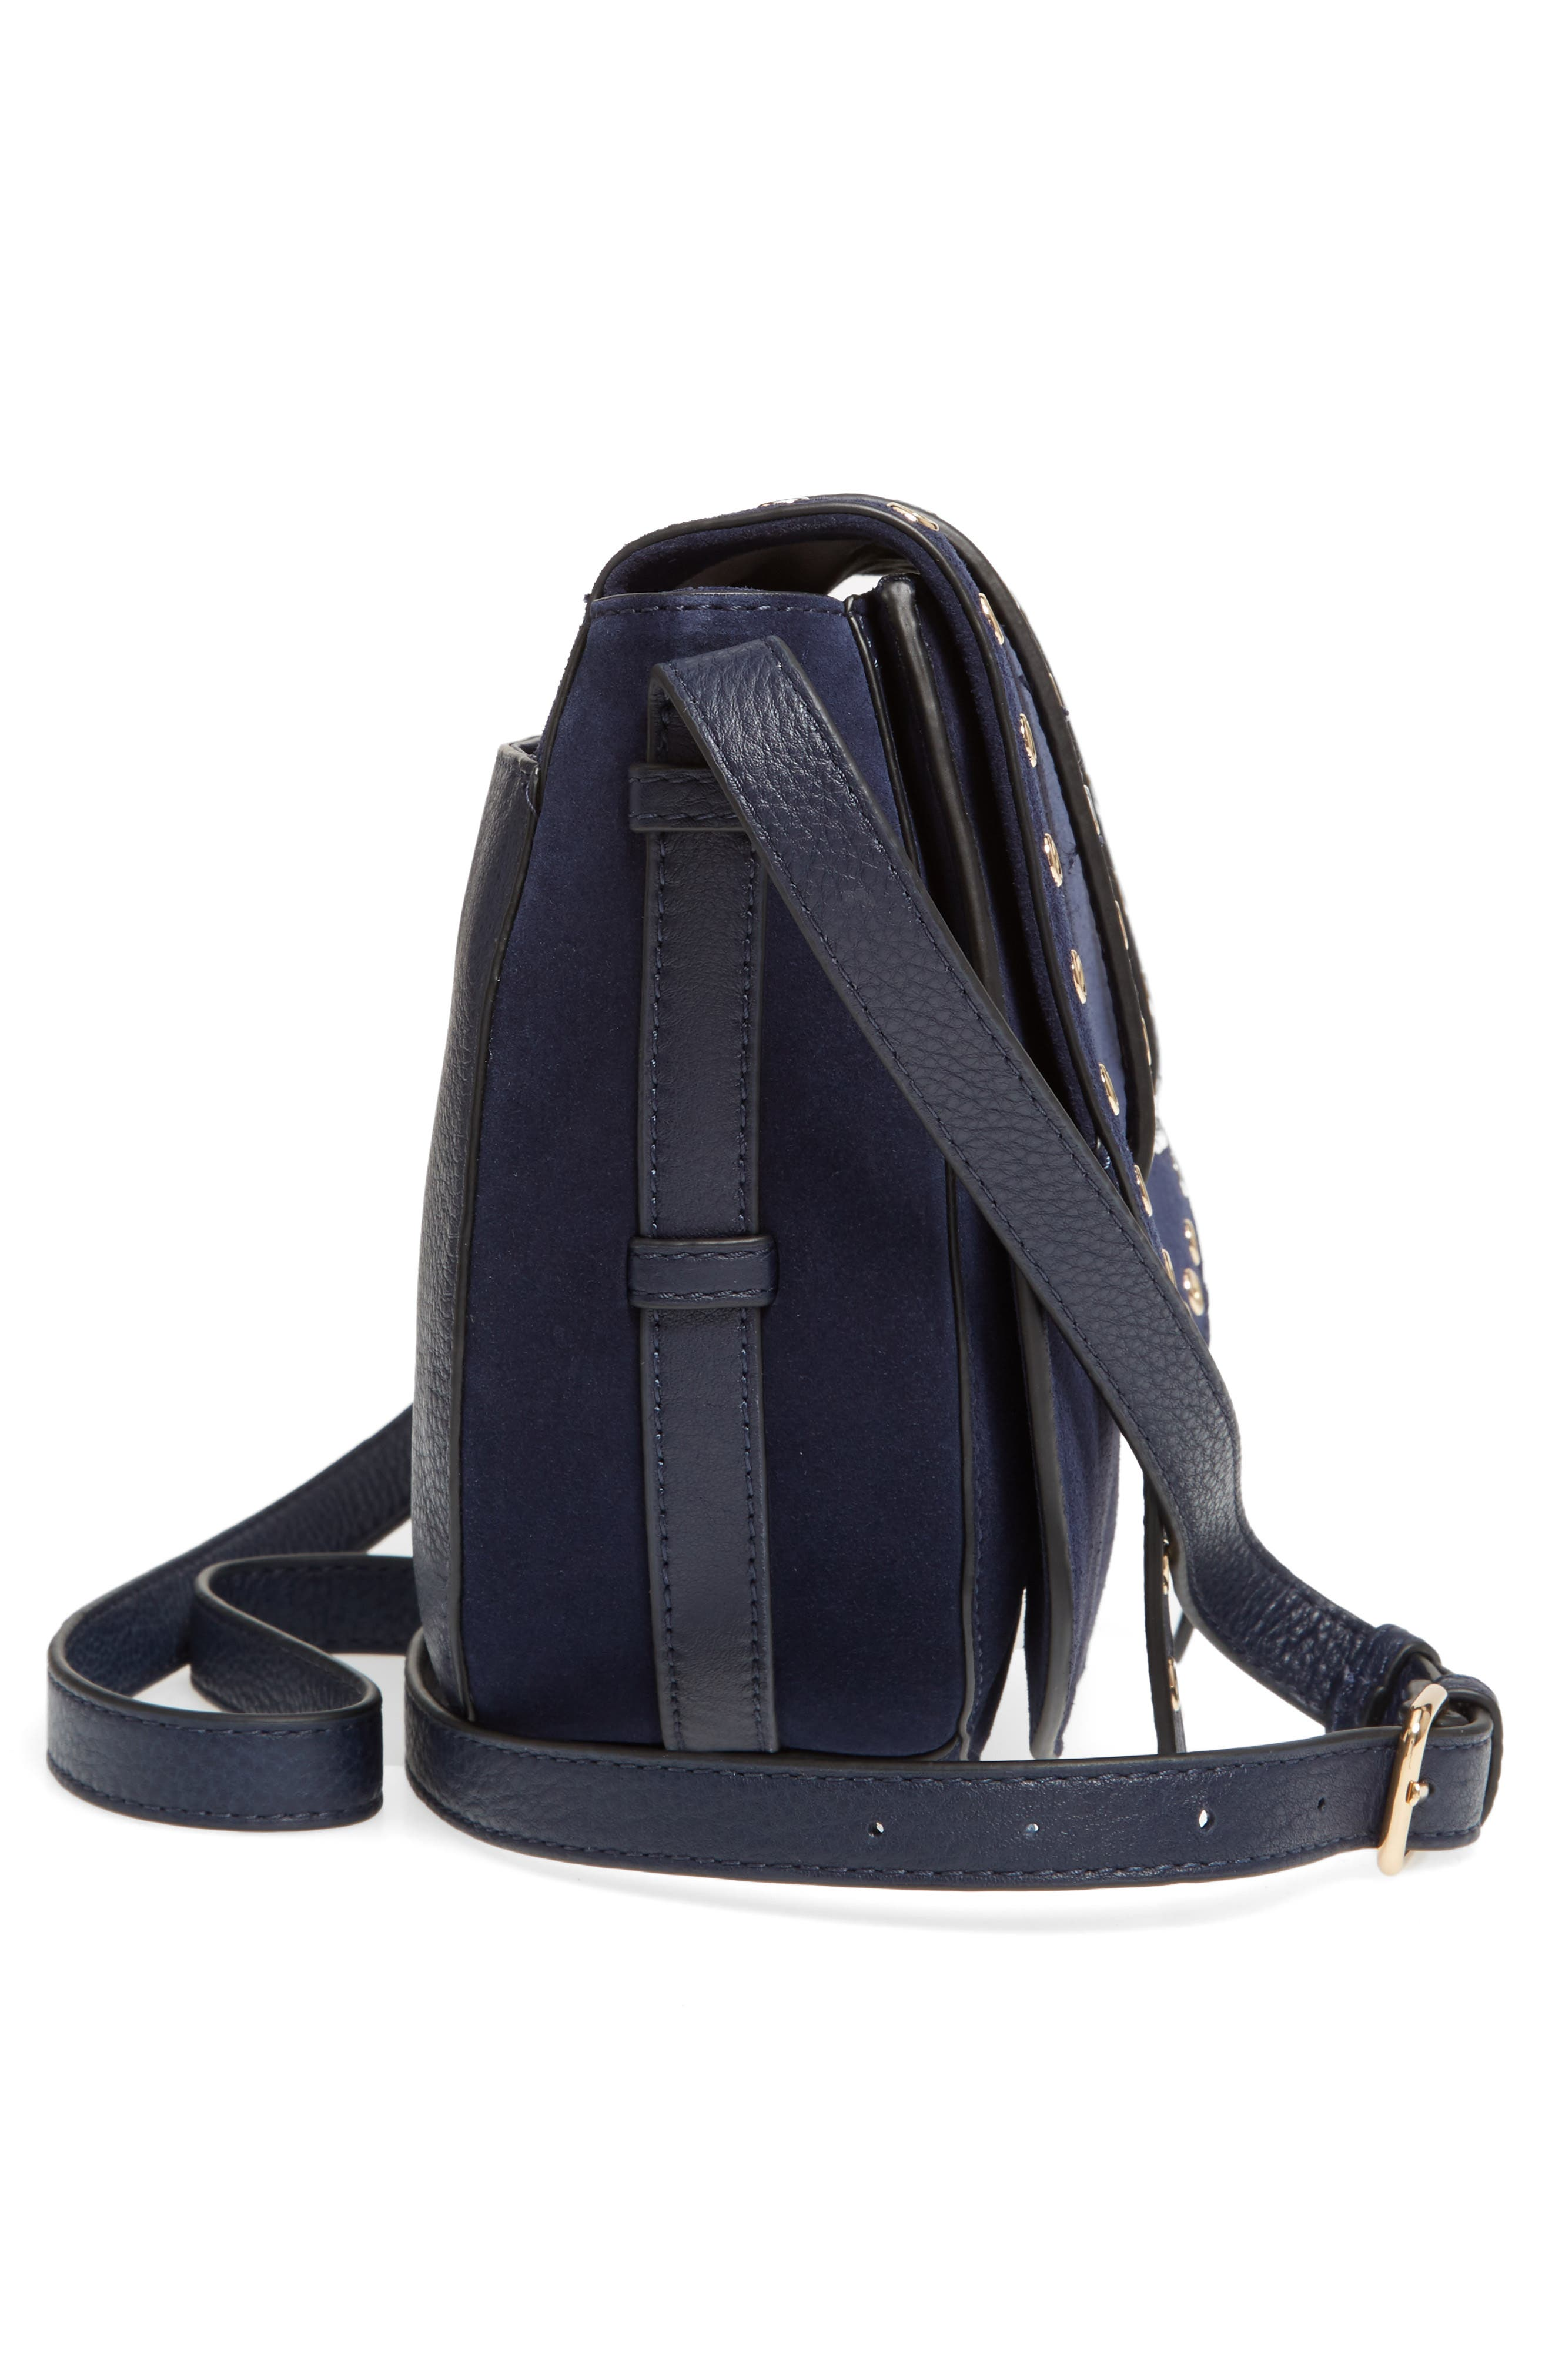 Areli Suede & Leather Crossbody Saddle Bag,                             Alternate thumbnail 5, color,                             Winter Navy